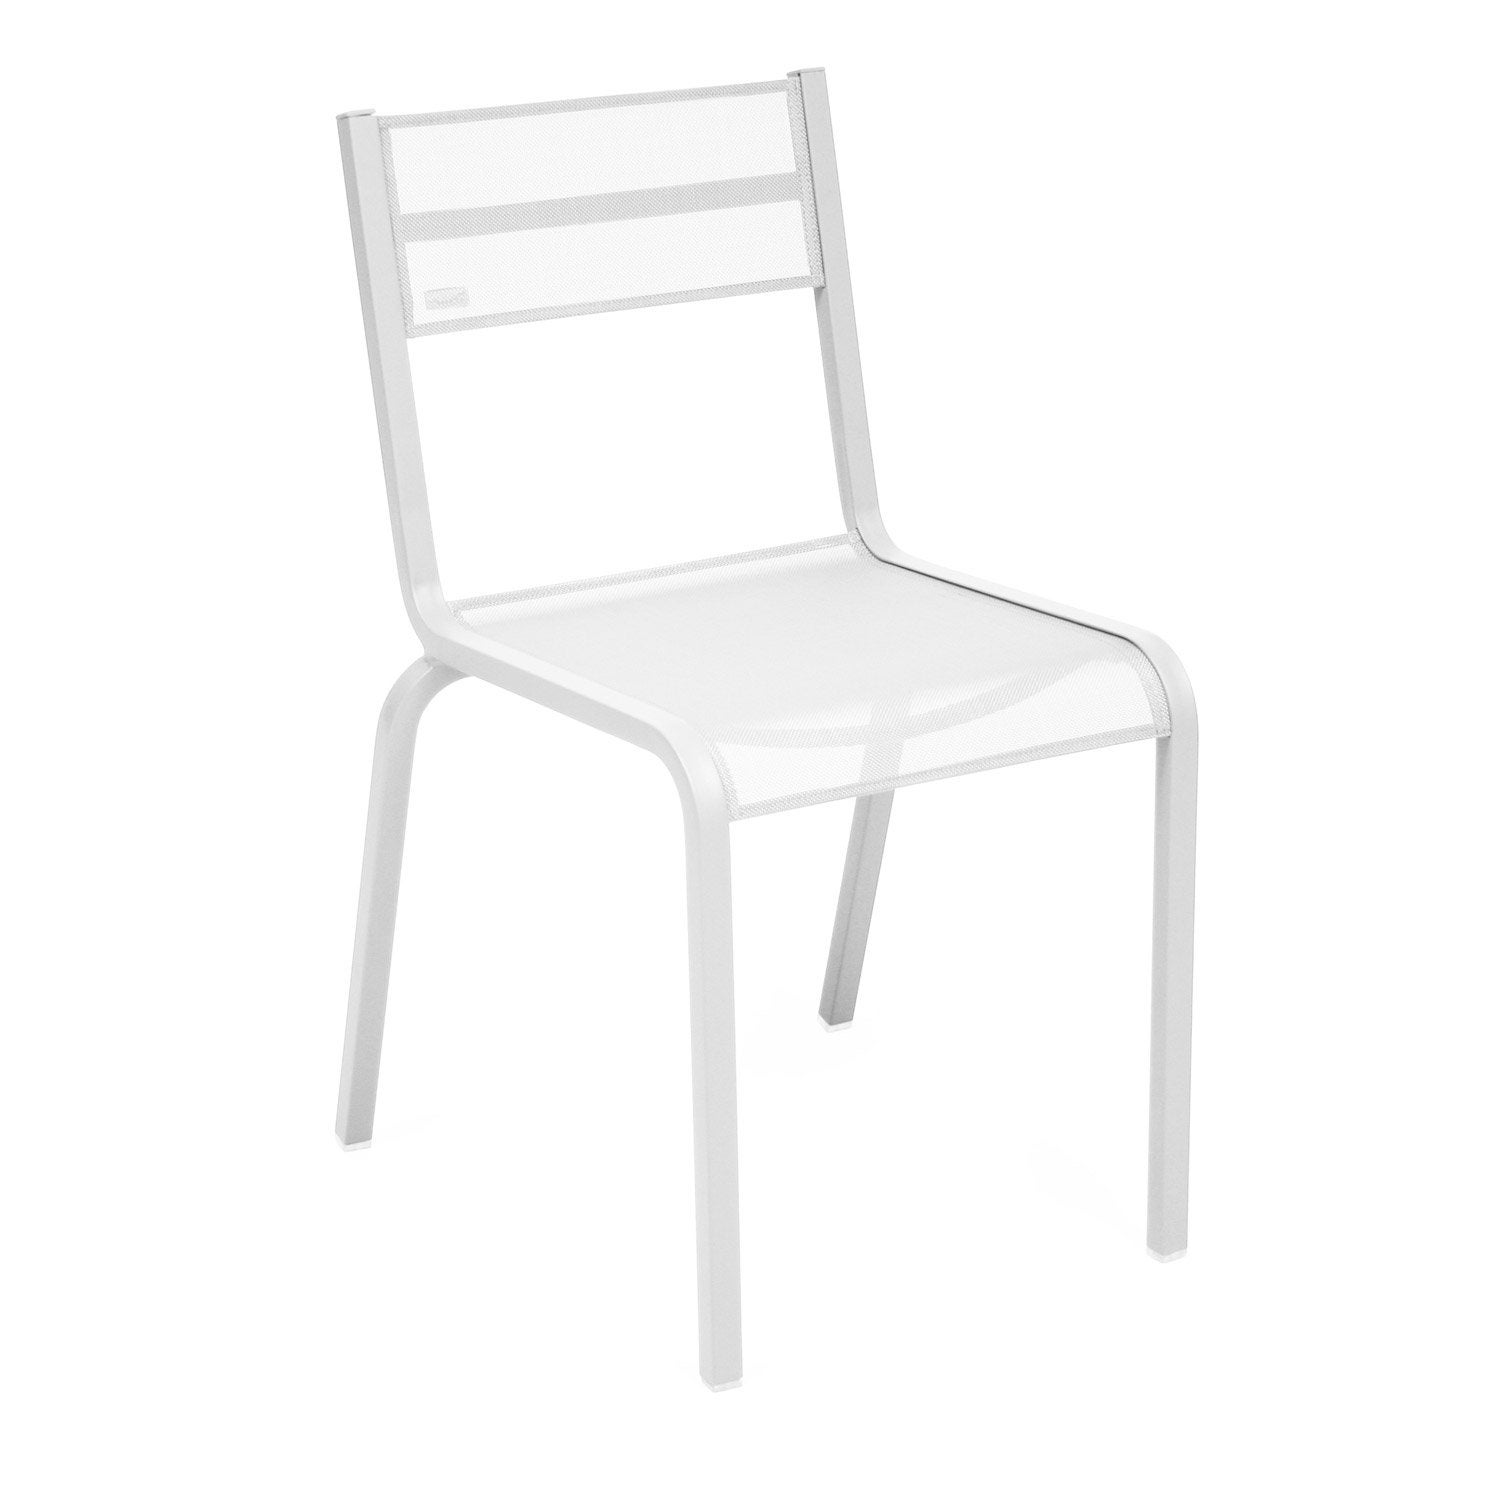 Chaise de jardin en aluminium ol ron blanc leroy merlin for Chaise longue leroy merlin